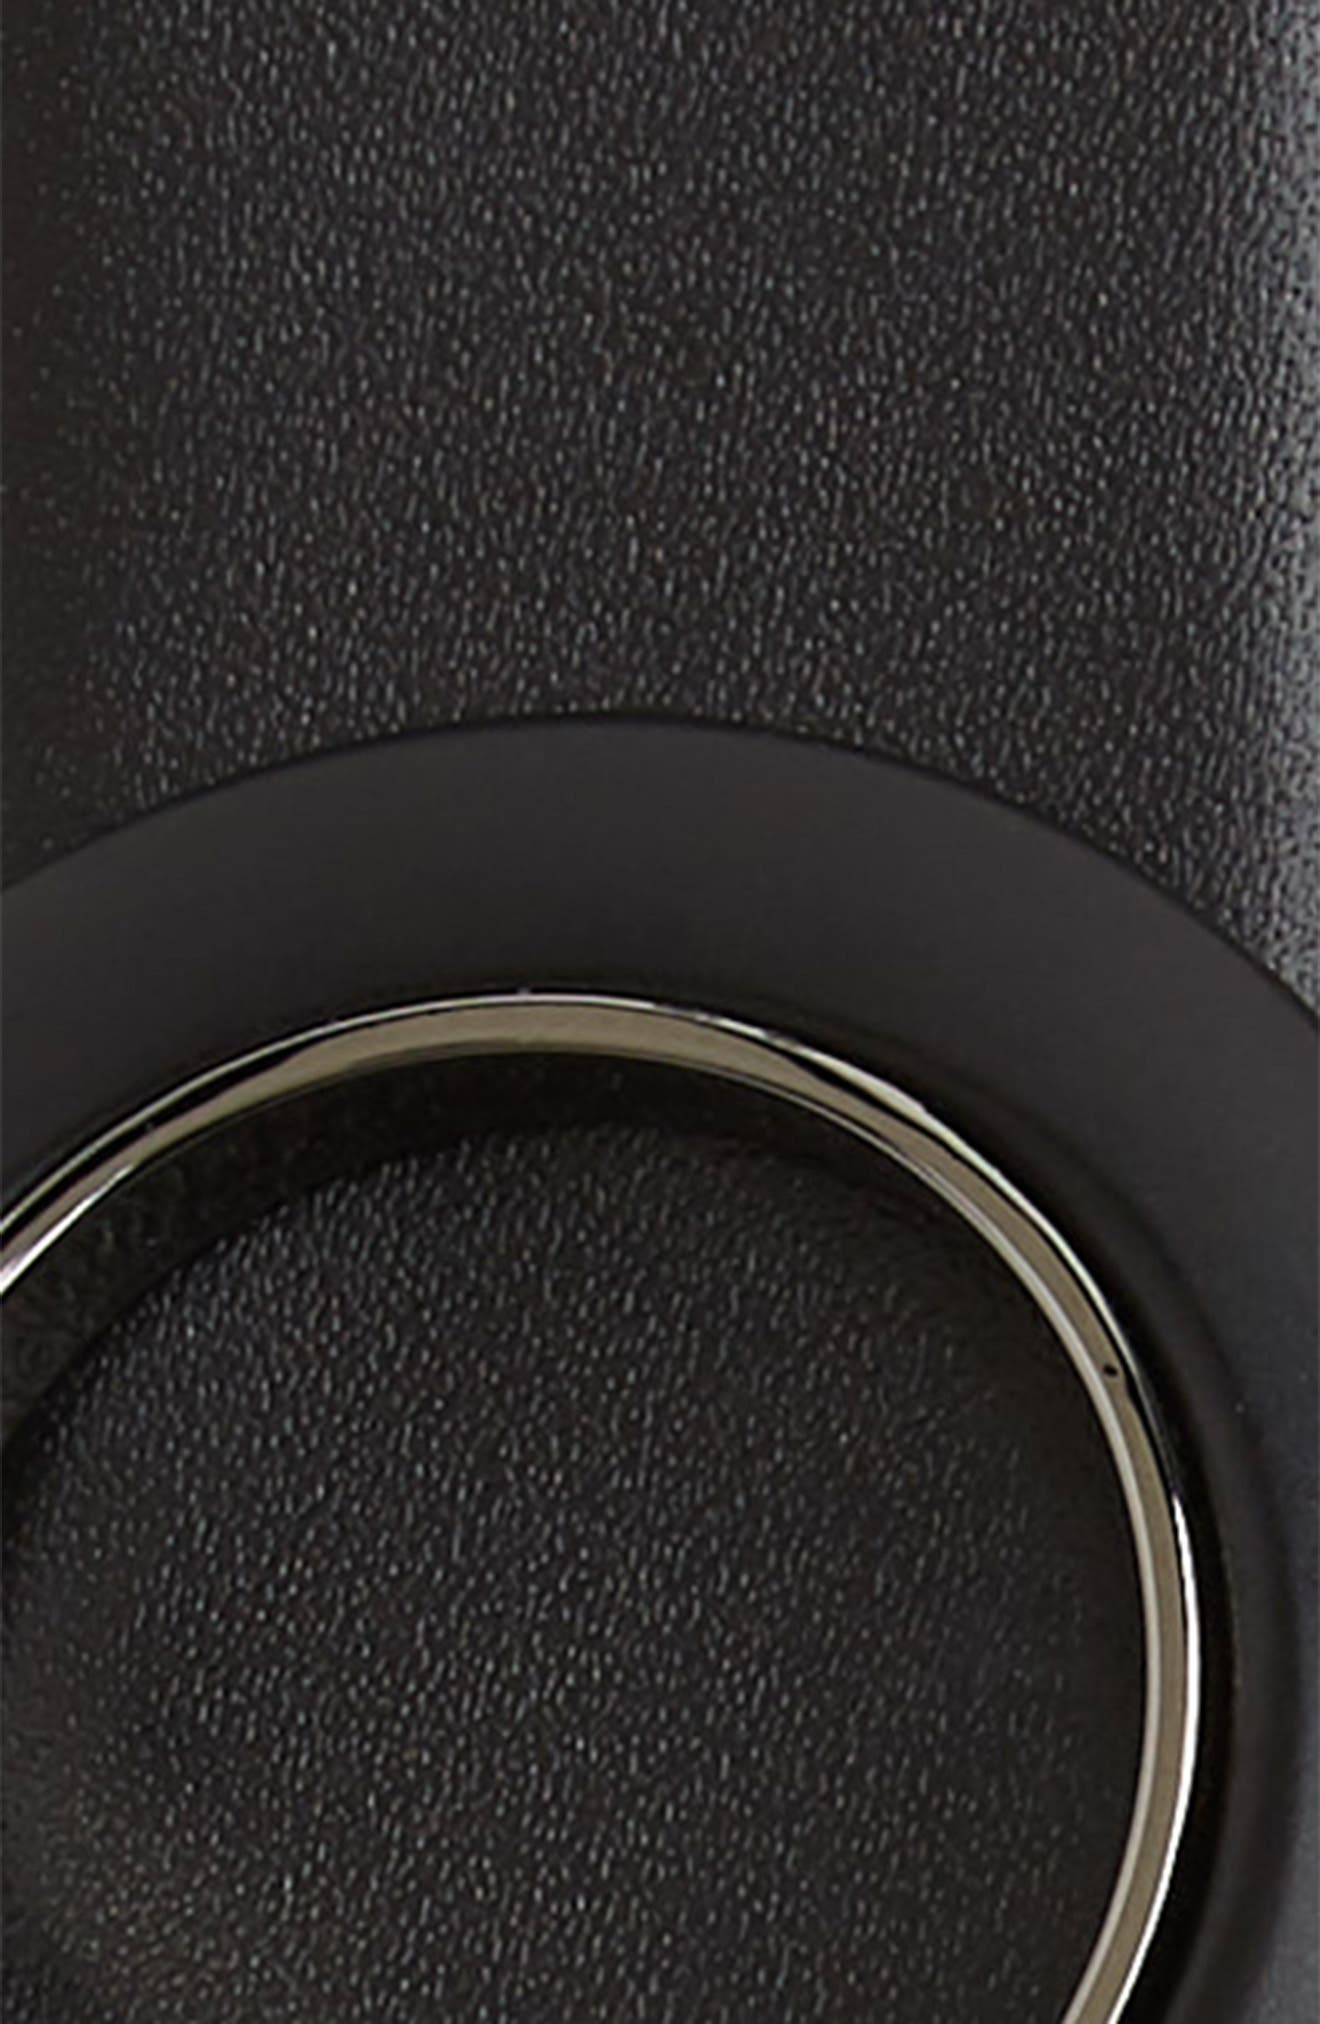 SALVATORE FERRAGAMO, Reversible Leather Belt, Alternate thumbnail 3, color, NERO / BLUE MARINE